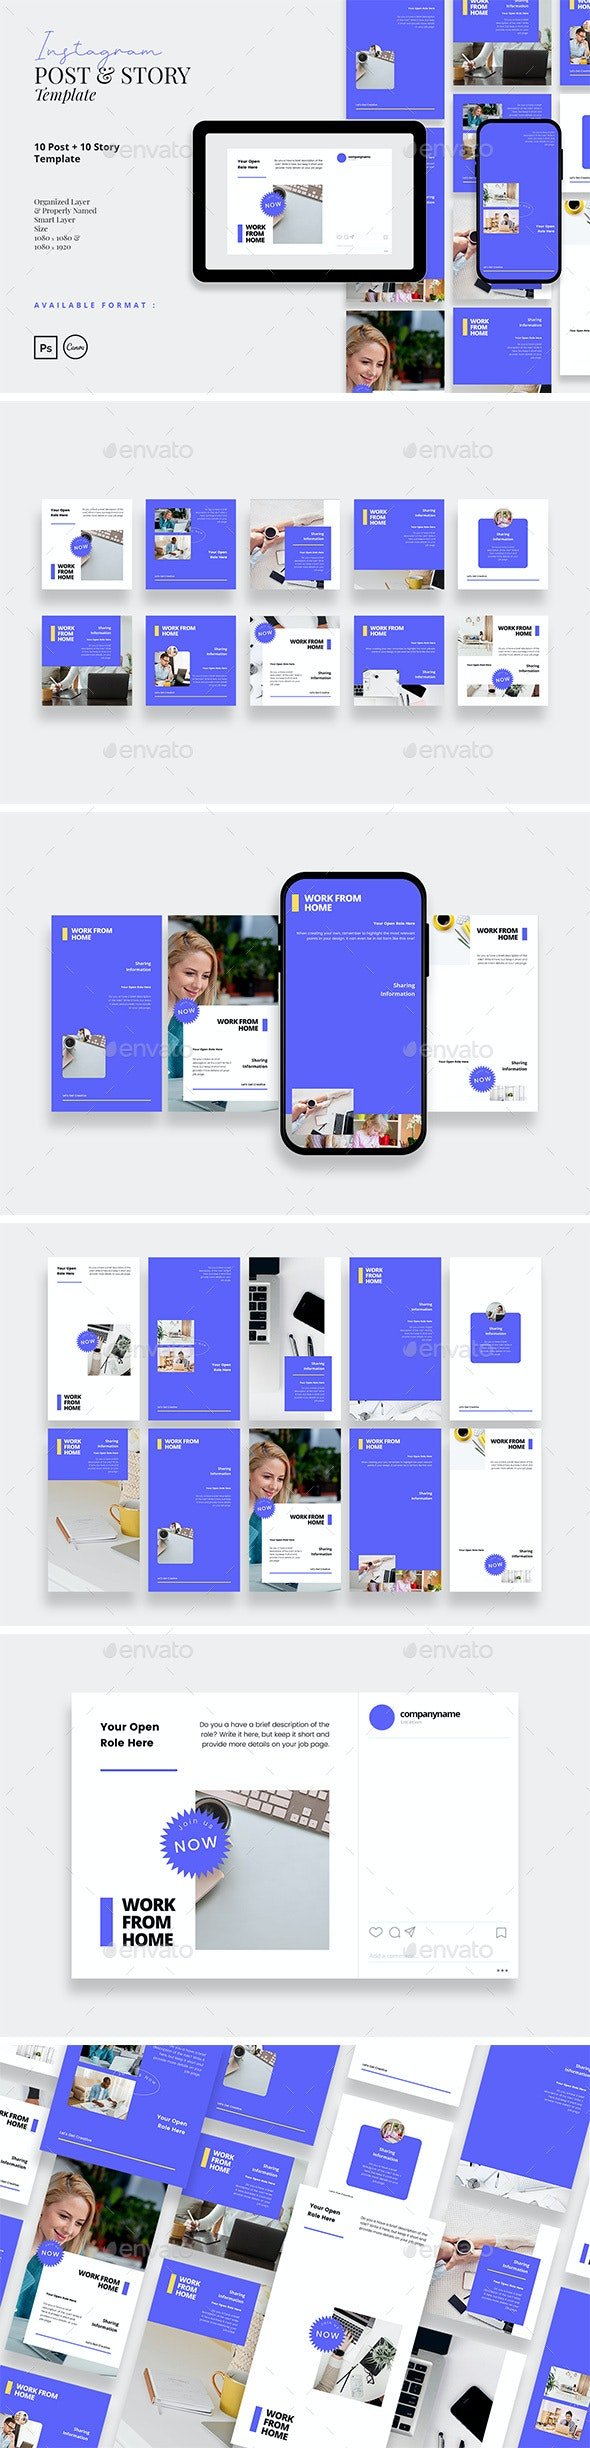 Modern and Neat Work from Home Instagram Template - Social Media Web Elements